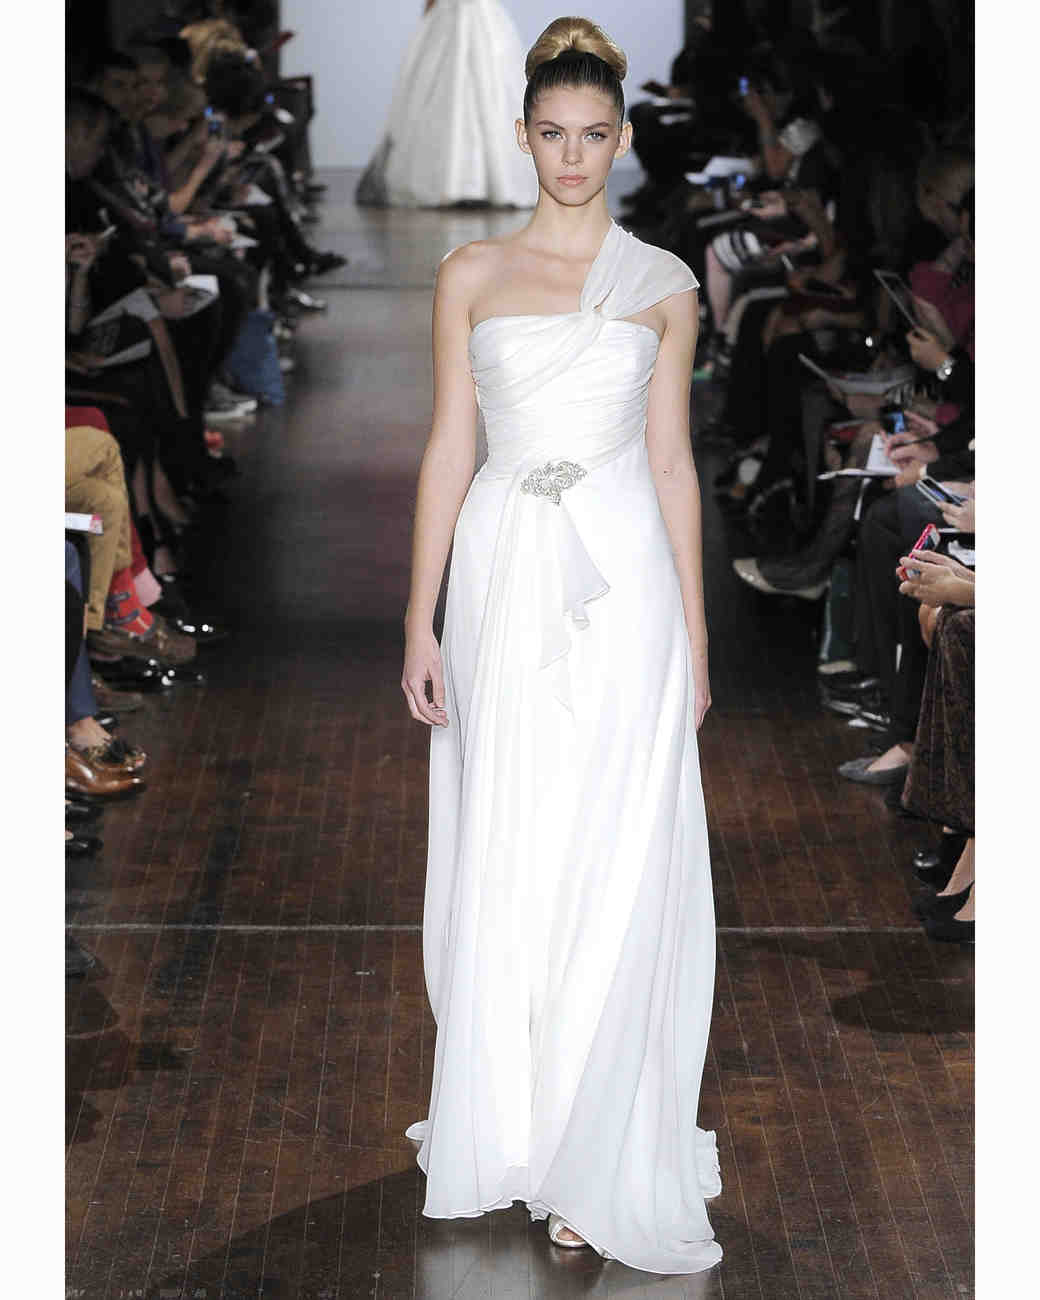 One-Shoulder Wedding Dresses, Fall 2013 | Martha Stewart Weddings